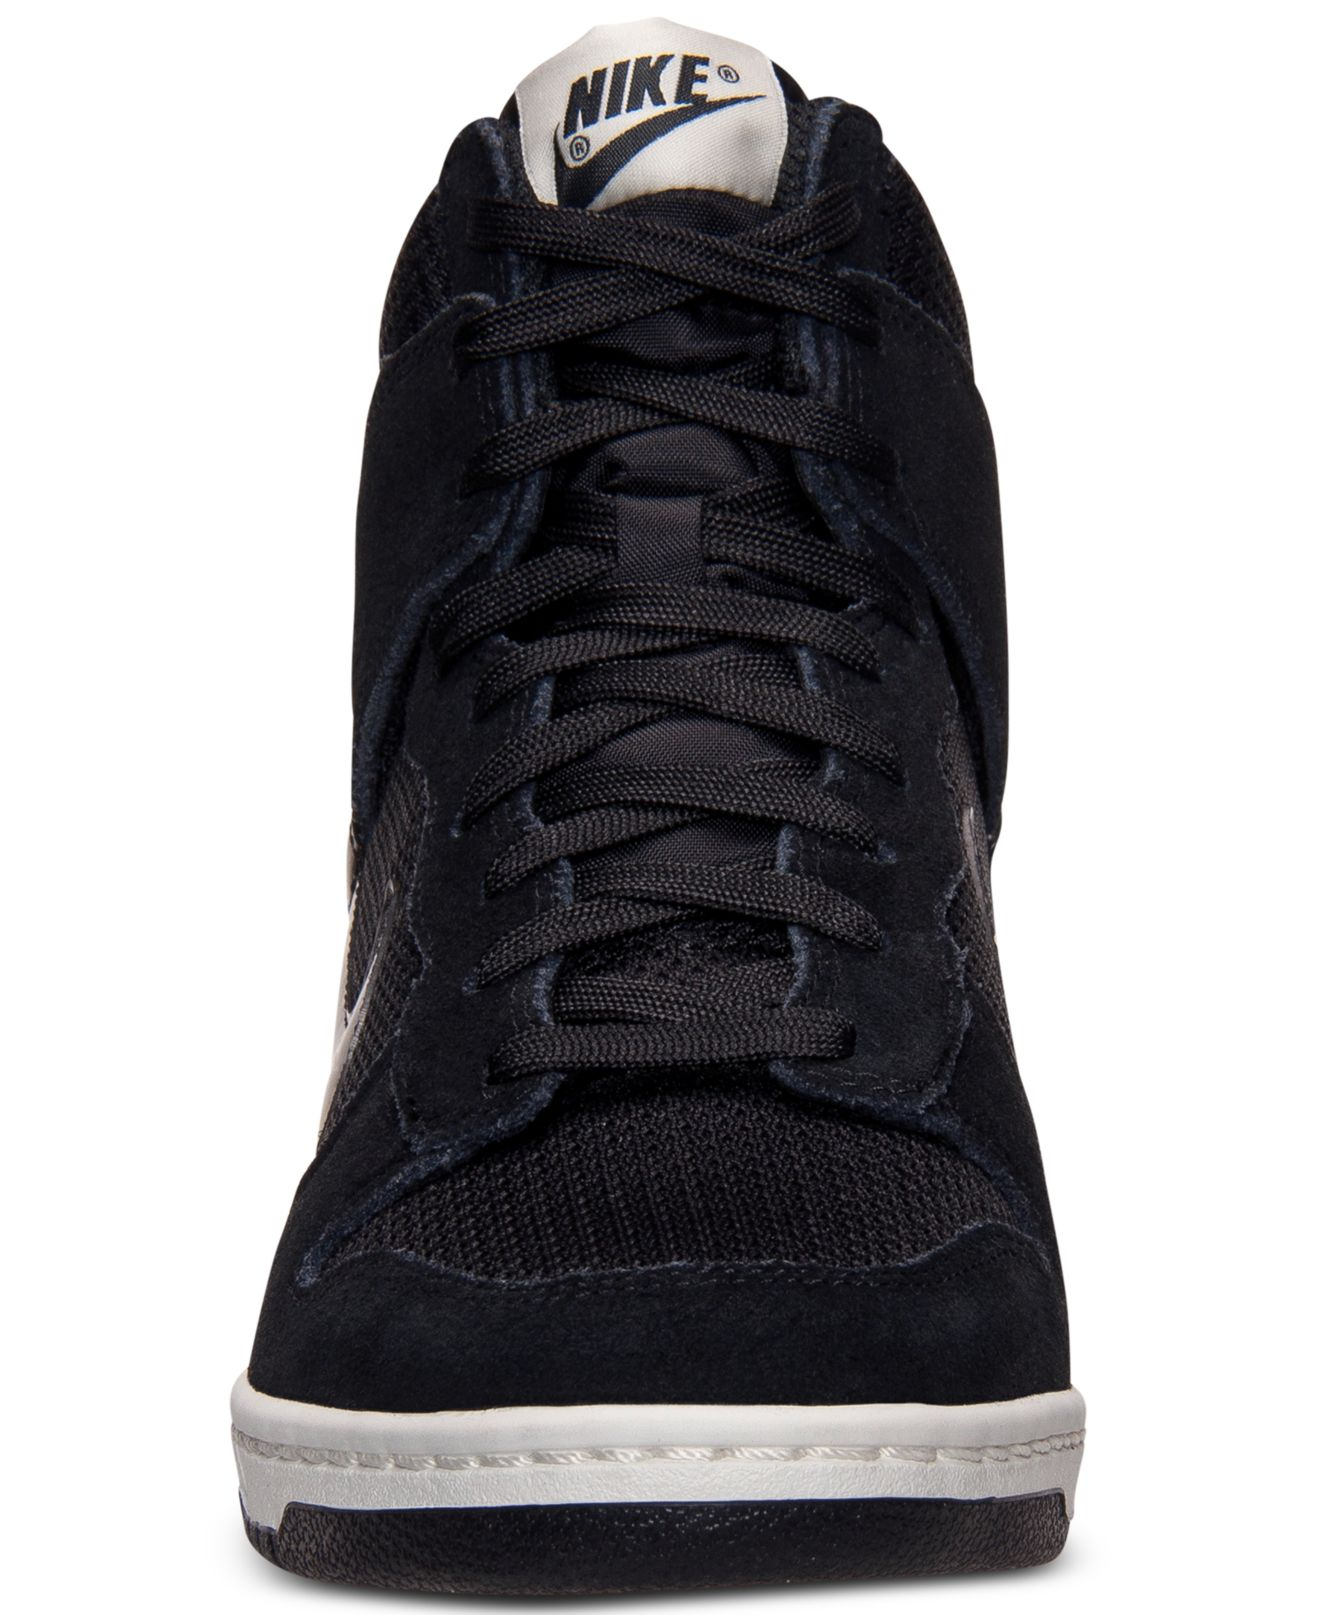 wholesale dealer 954ba a740b Gallery. Previously sold at  Macy s · Women s Nike Dunk Sky Hi ...